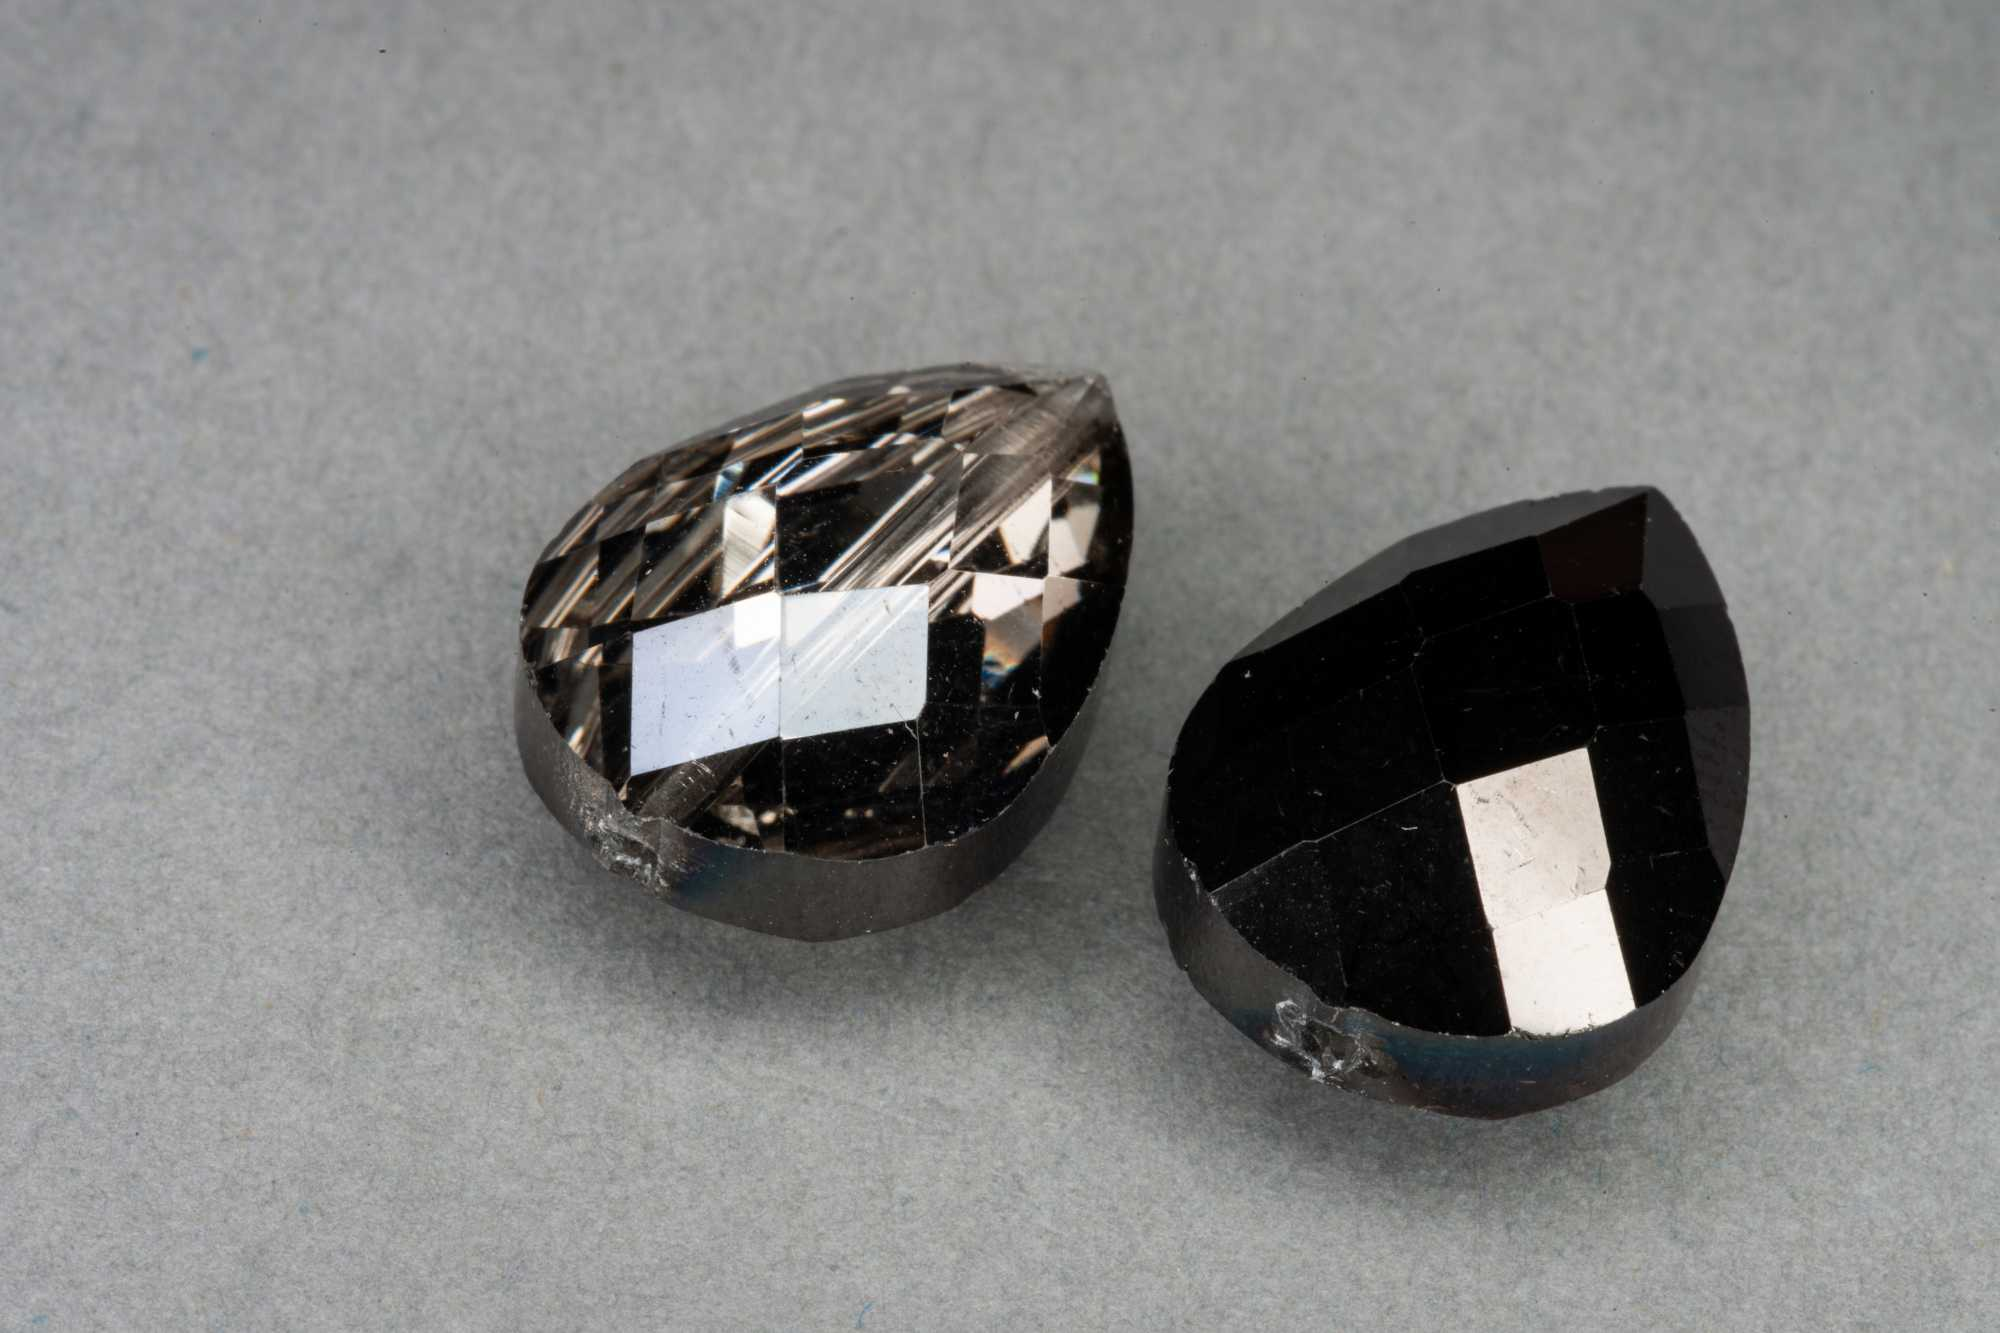 Metallic Black/Silver Pear Shape Faceted Glass Bead 18x13x8mm